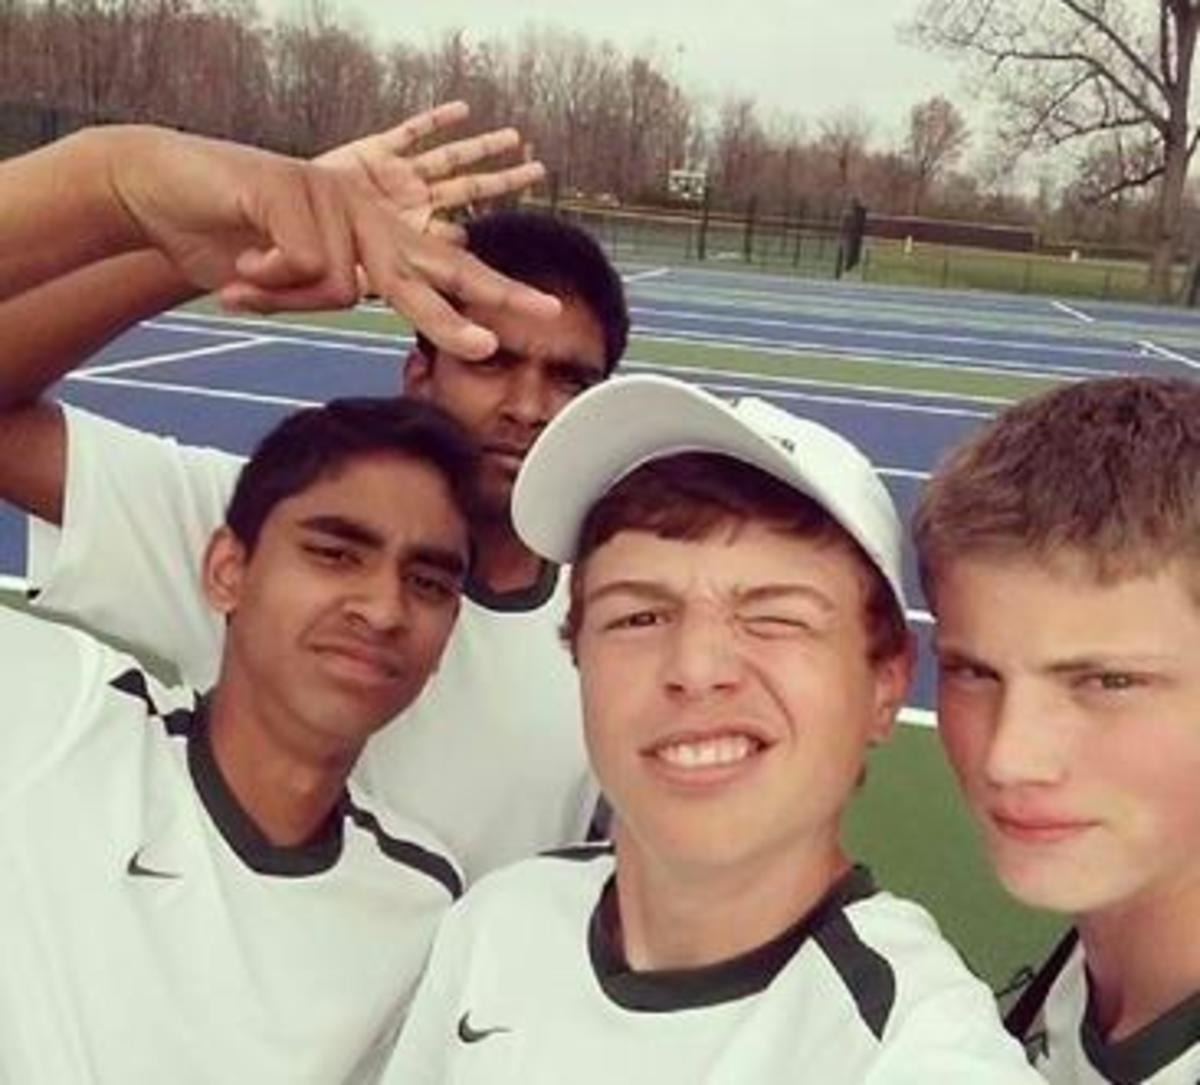 """A """"selfie"""" with the new courts taken by Alex Wittenbaum, 11. Also in the photo with with now lined courts are Deepak Indrakanti, 11, Noah Stern, 9, and Nakul Narendran, 11, all members of the A team. The courts are scheduled to be played on within the next few weeks."""